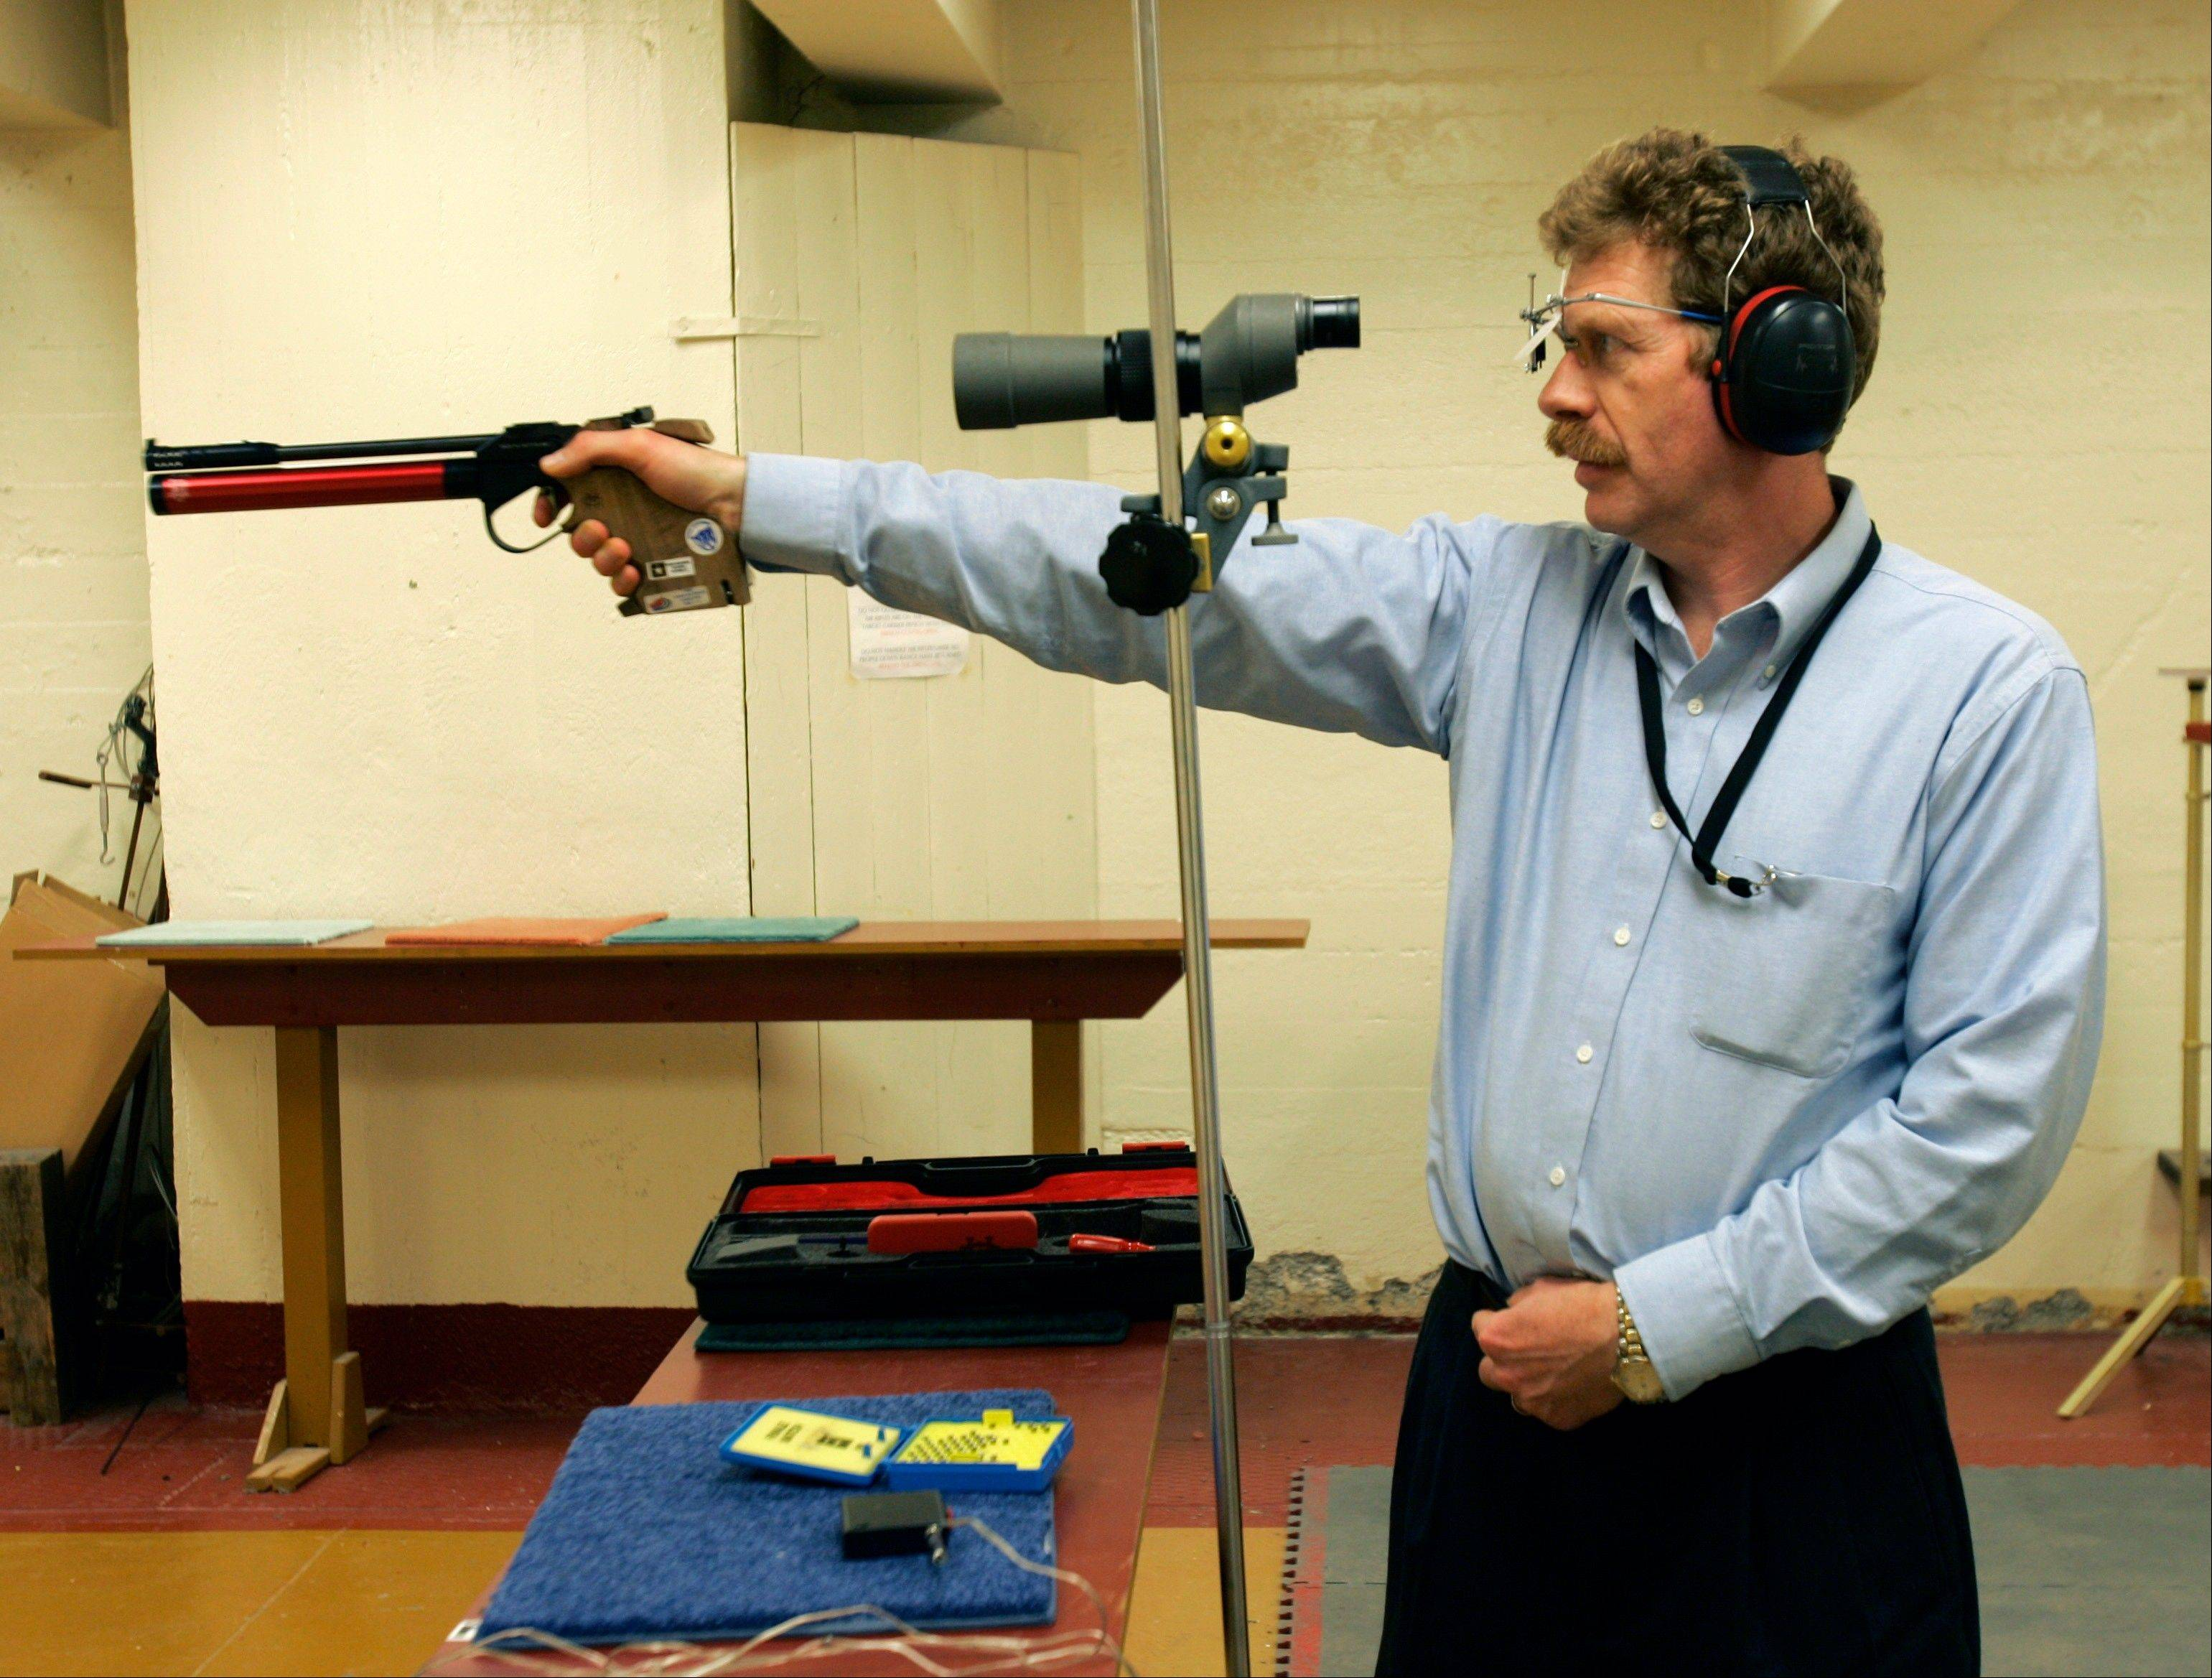 Bruce Martindale takes aim as he competes in a weekly air gun league in Troy, N.Y. Martindale, who normally uses a .22-caliber, has cut back on practice because ammunition is in short supply.